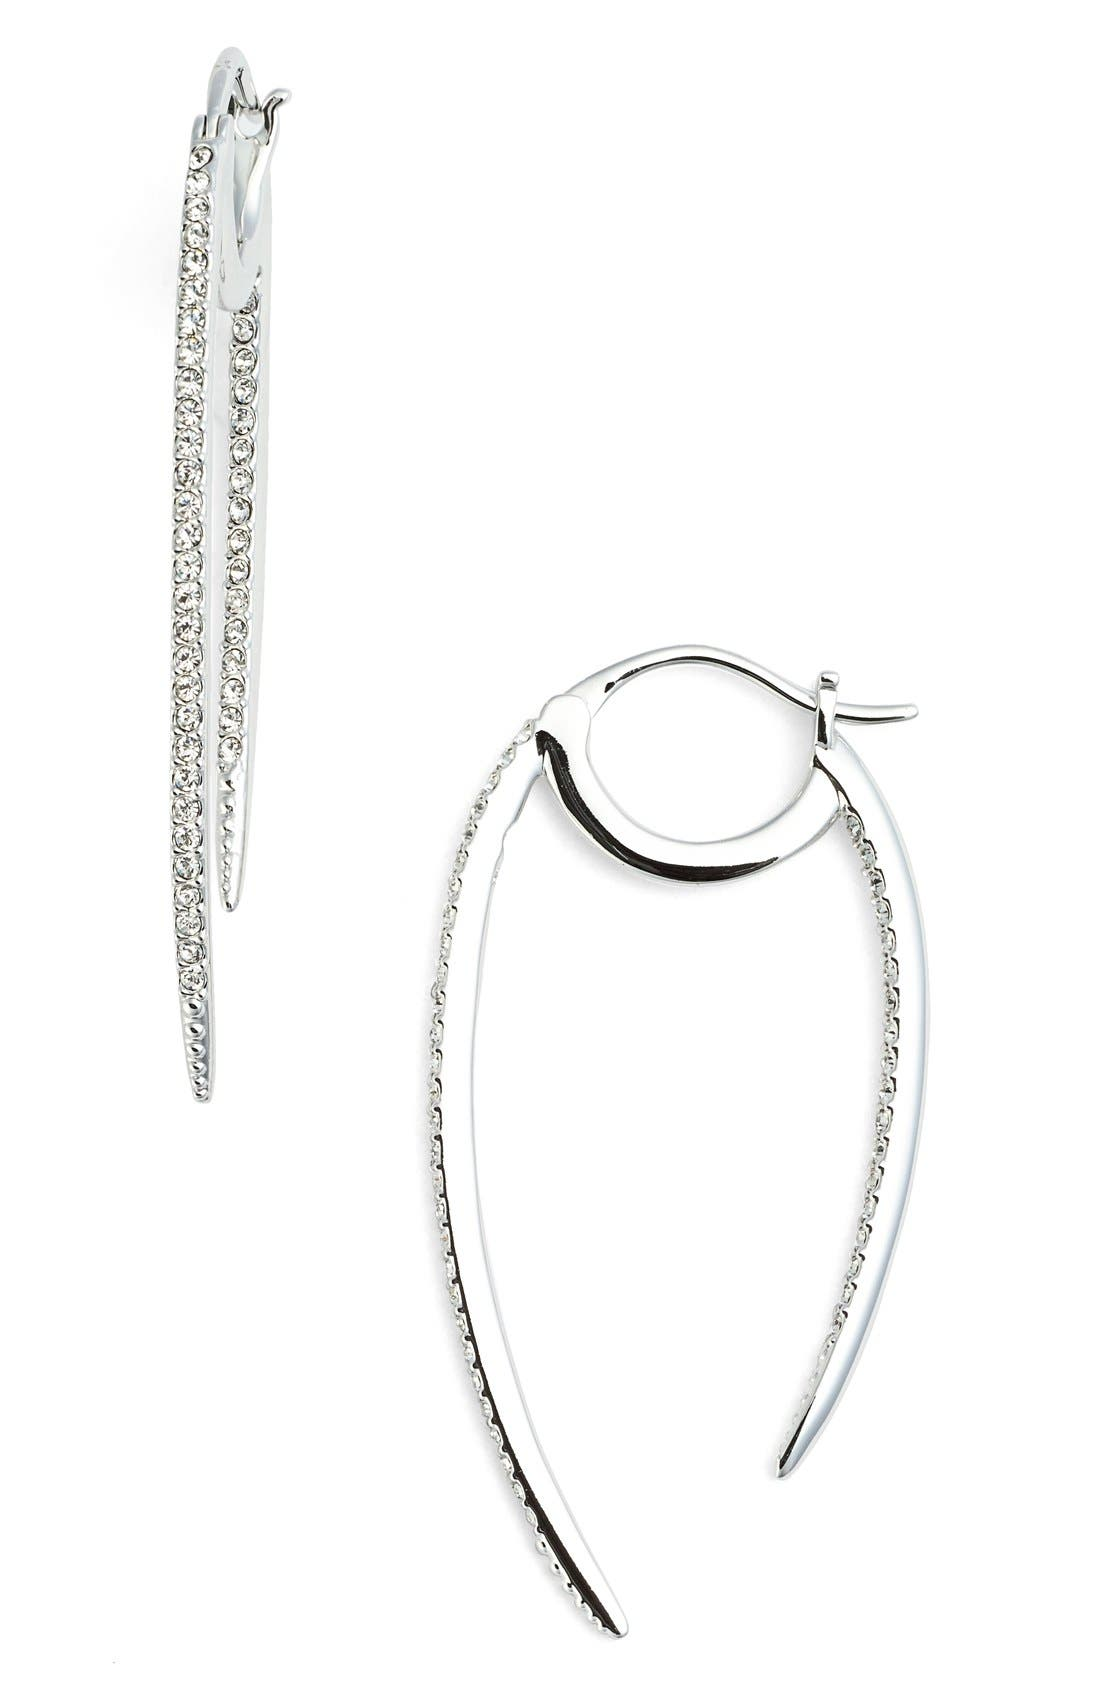 'Crescent' Linear Hoop Earrings,                         Main,                         color, SILVER